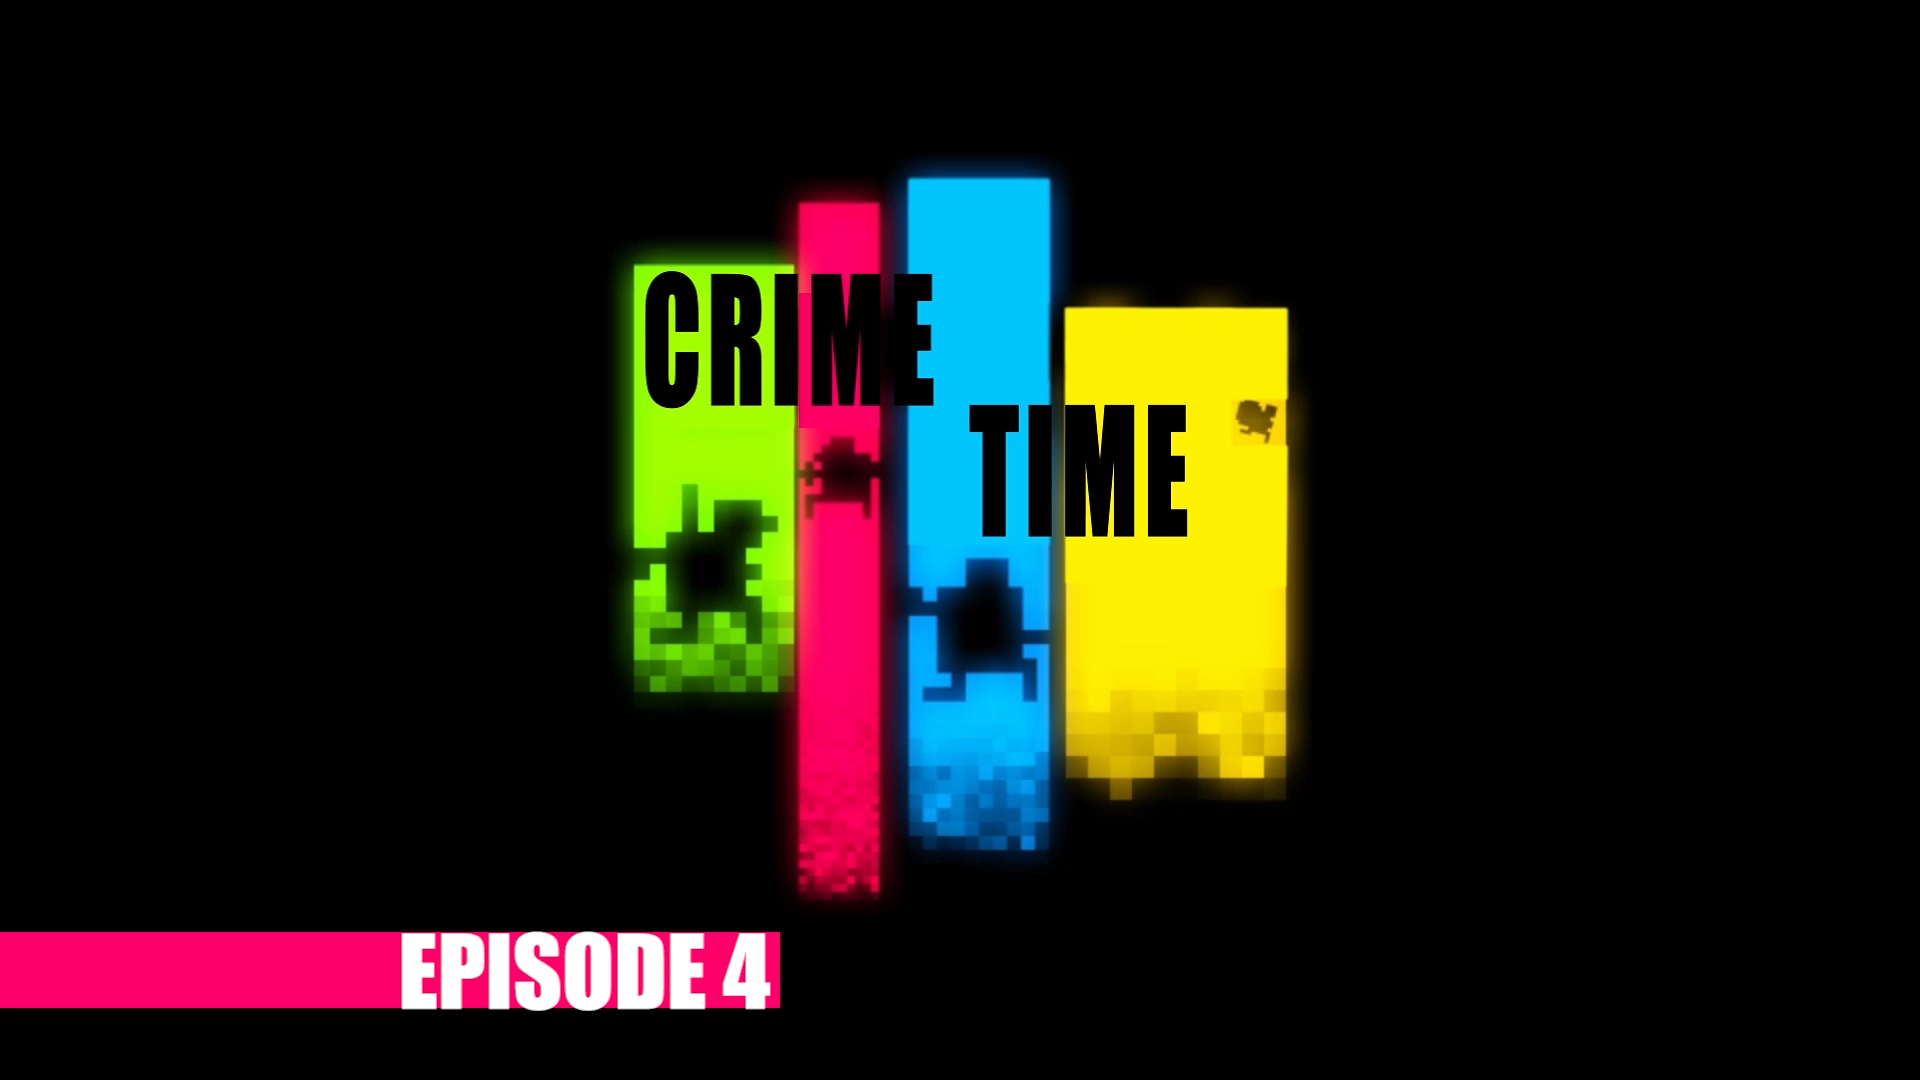 Crime Time Episode 4.jpg